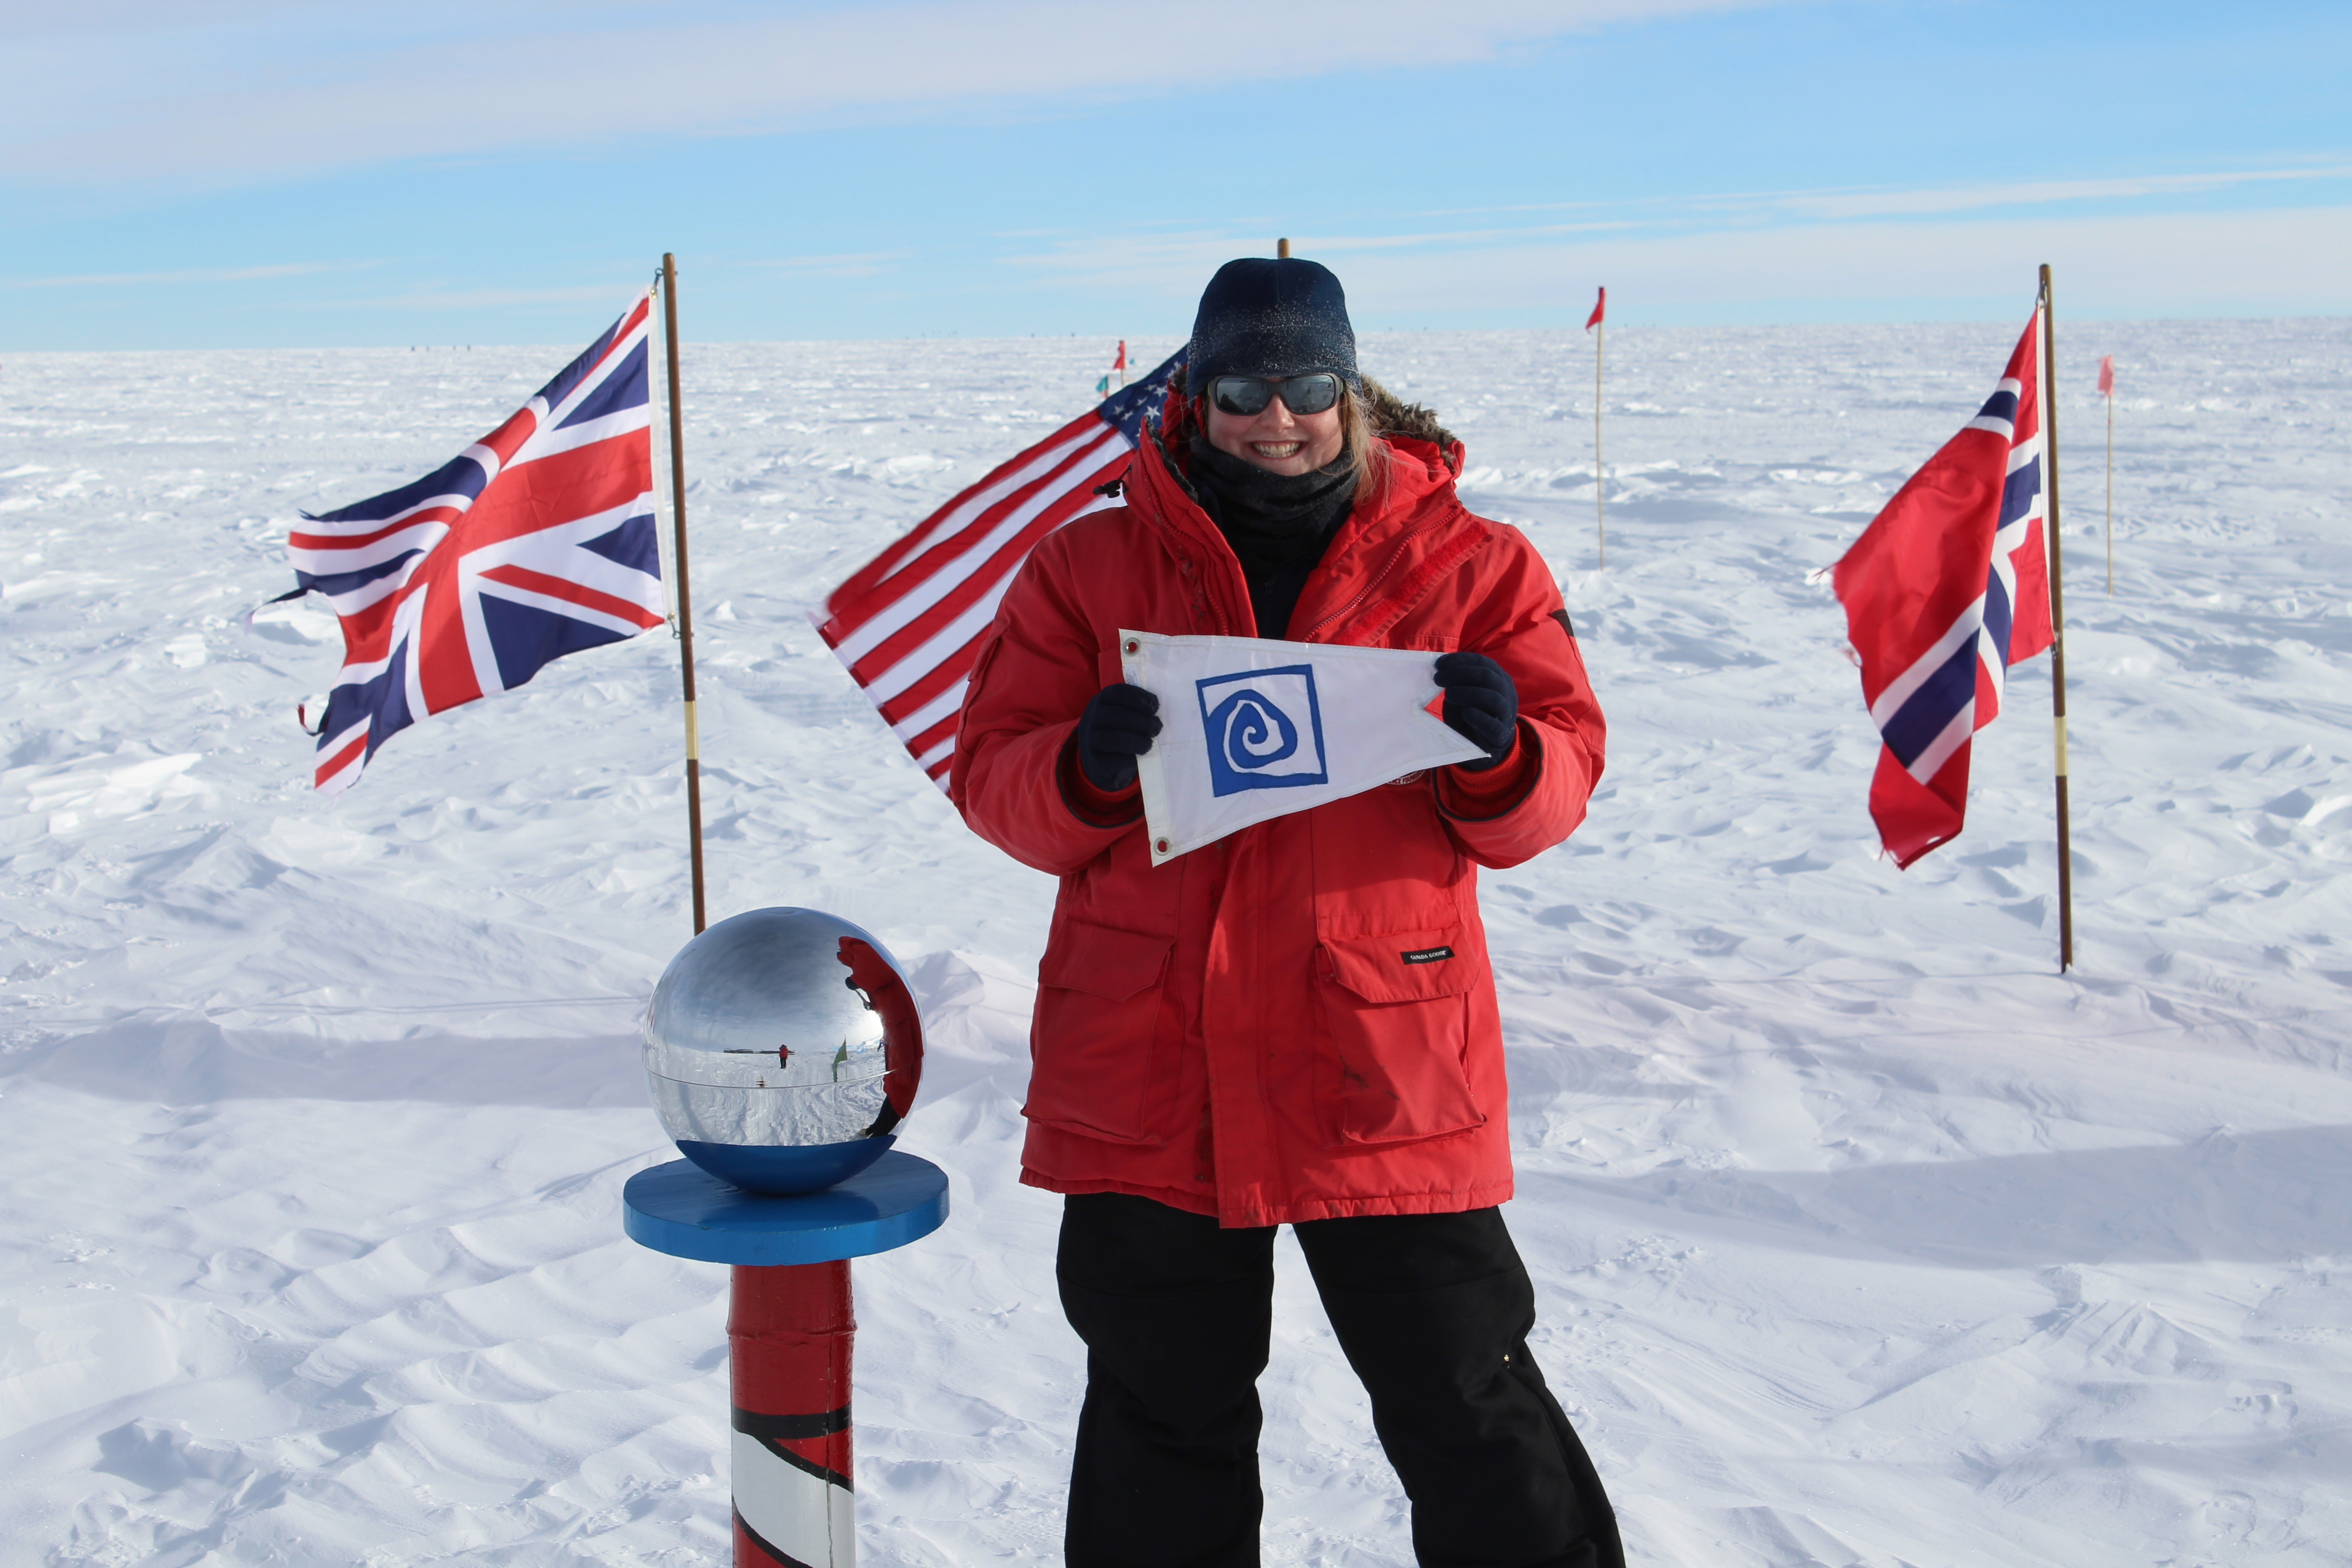 Spring 2003 alumna Jaime Hensel stands at the ceremonial South Pole with the Williams-Mystic burgee in hand.